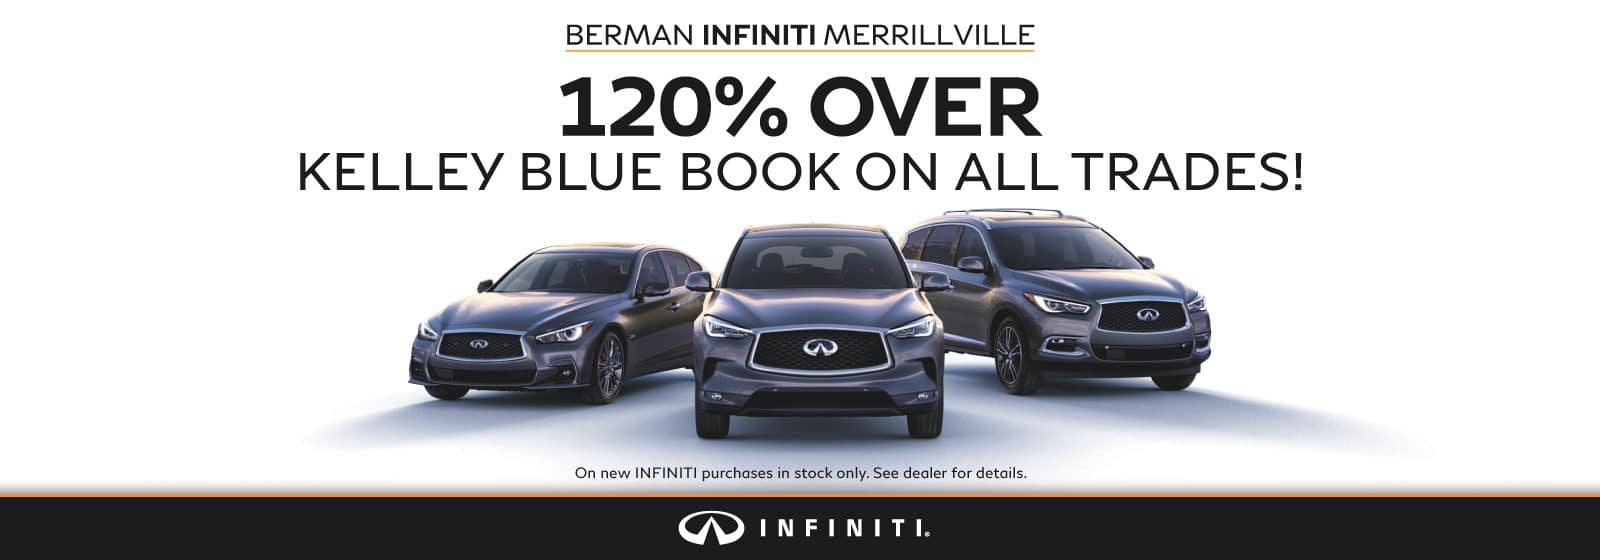 120% OVER Kelley Blue Book on all trades!